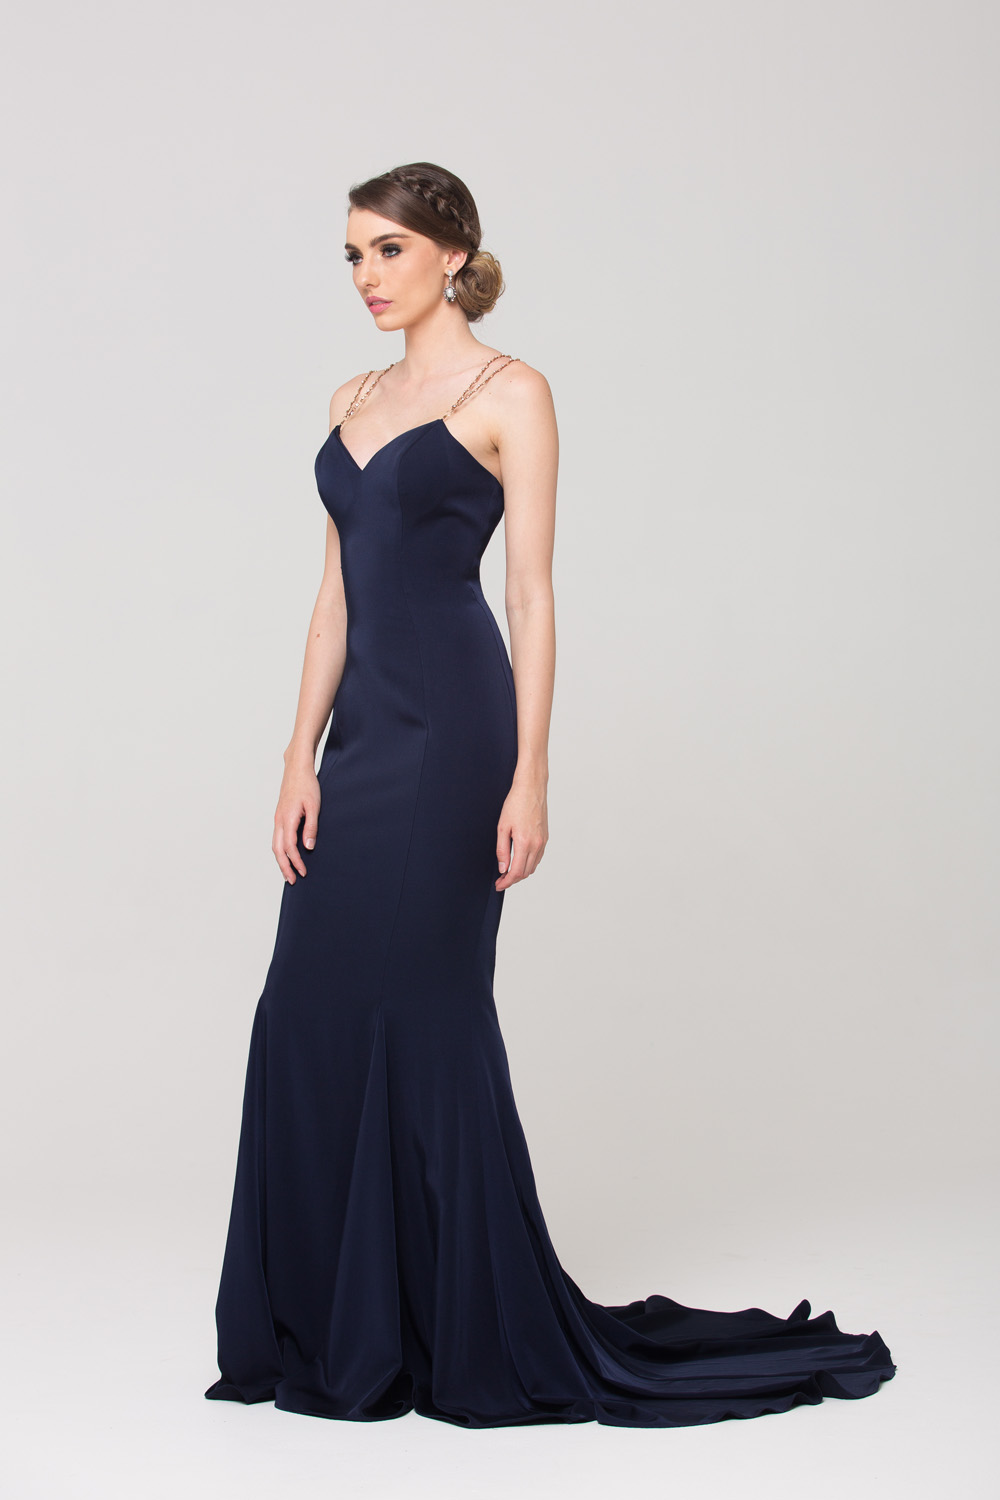 Bree fitted evening dress side